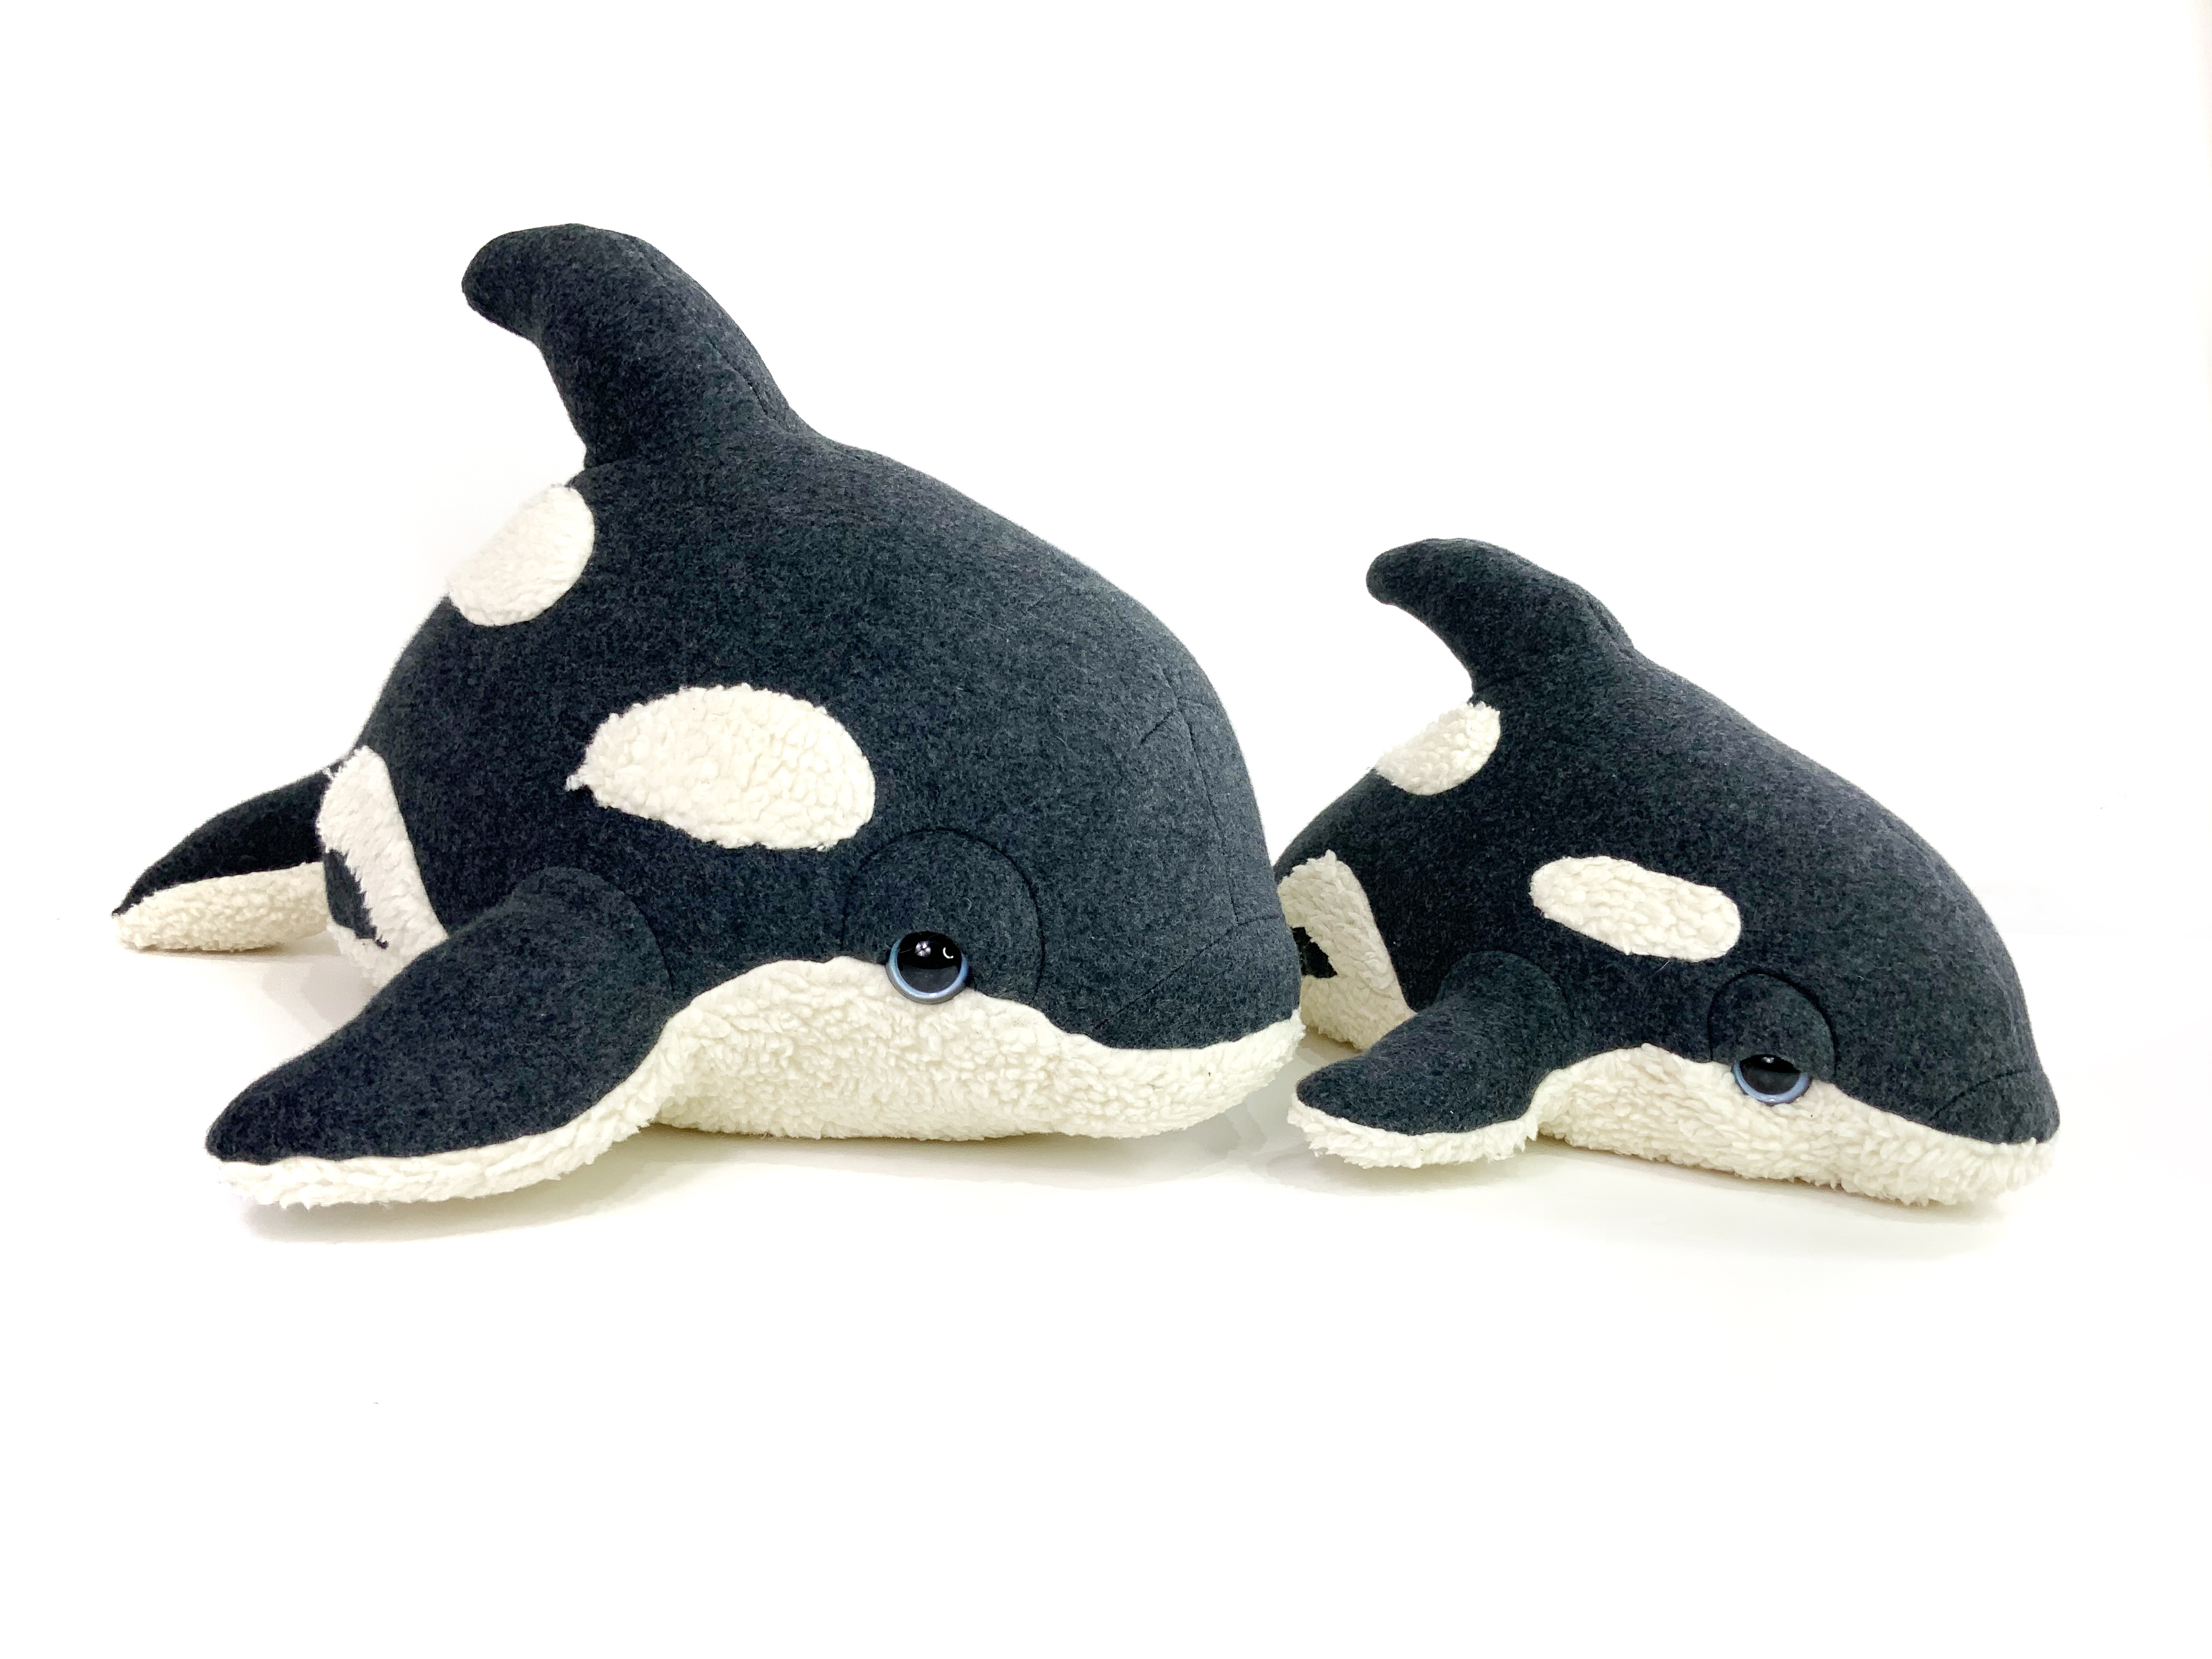 Handmade Killer Whale Plush - Organic Cotton Baby Orca Toy - Georgia Baby Orca